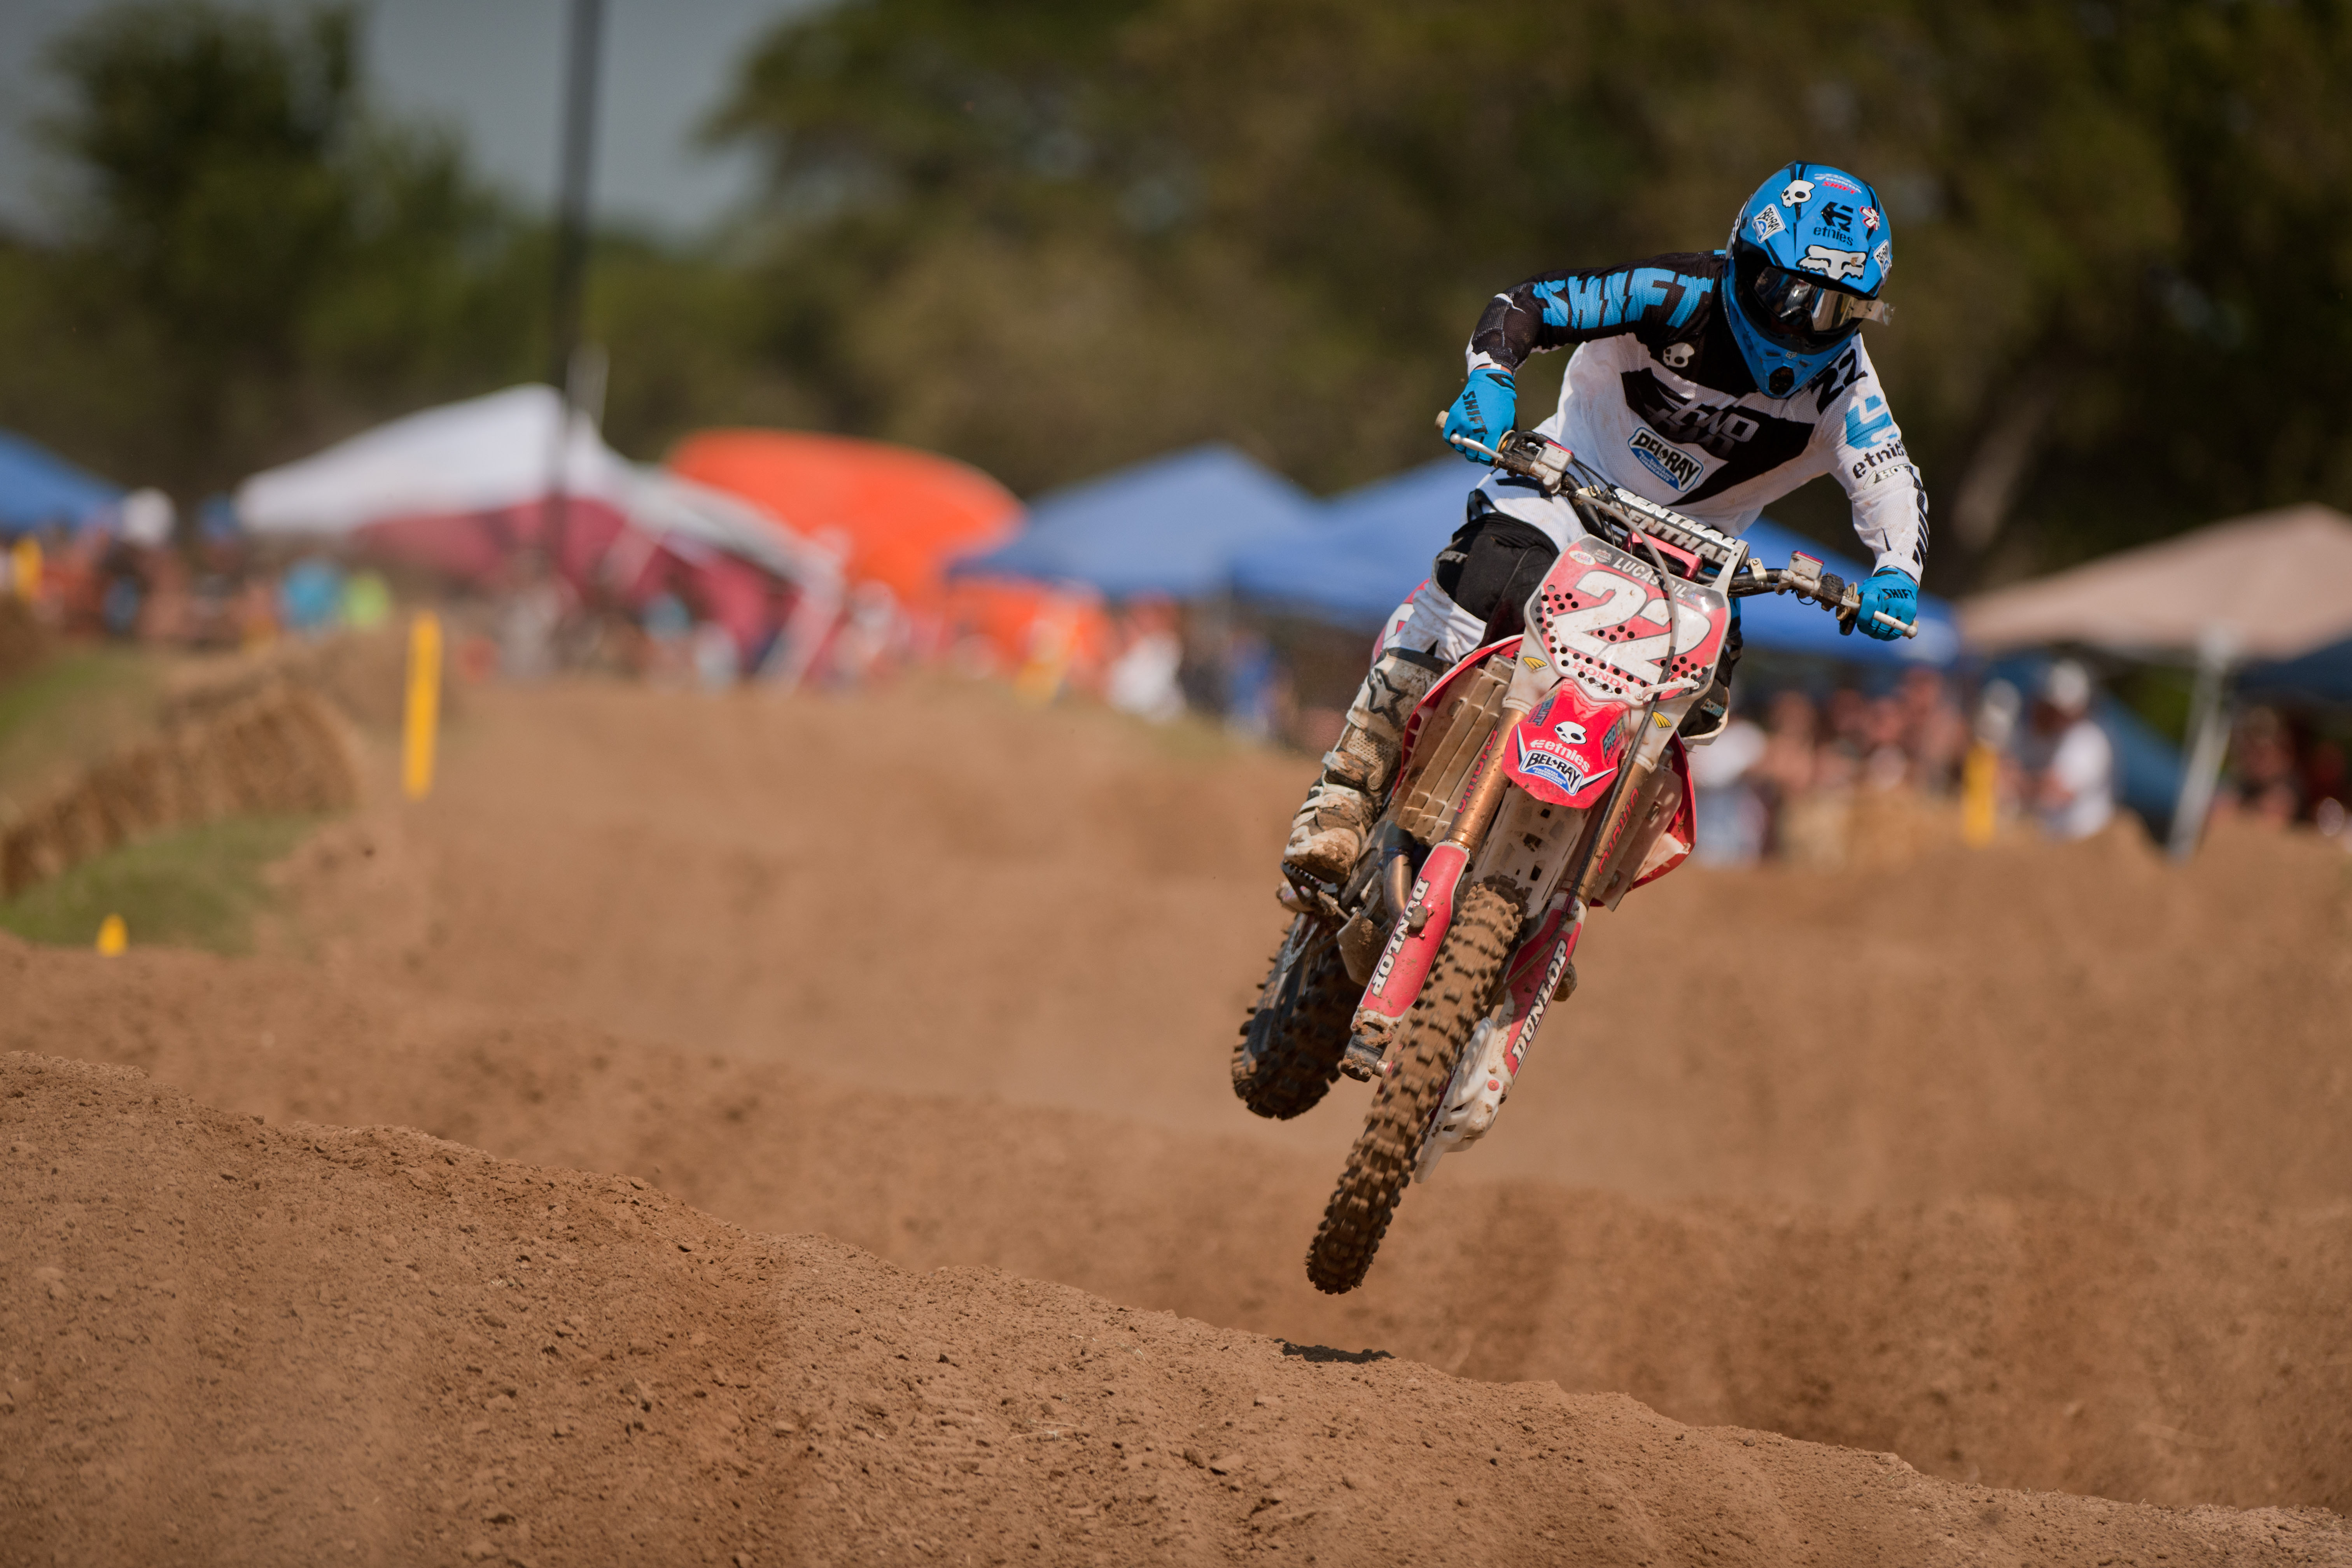 Chad Reed hits High Point